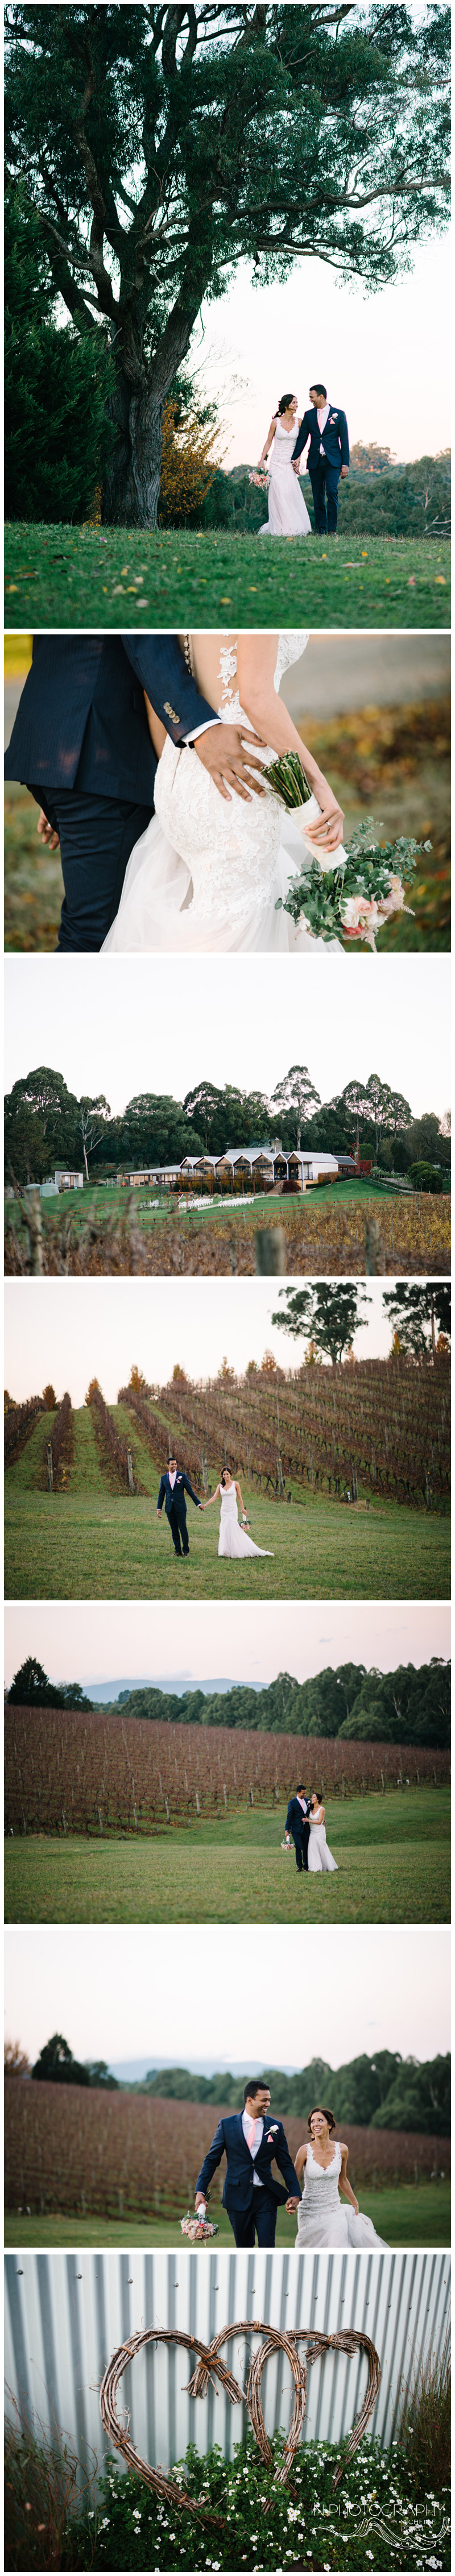 Yarra Ranges Estate wedding photography